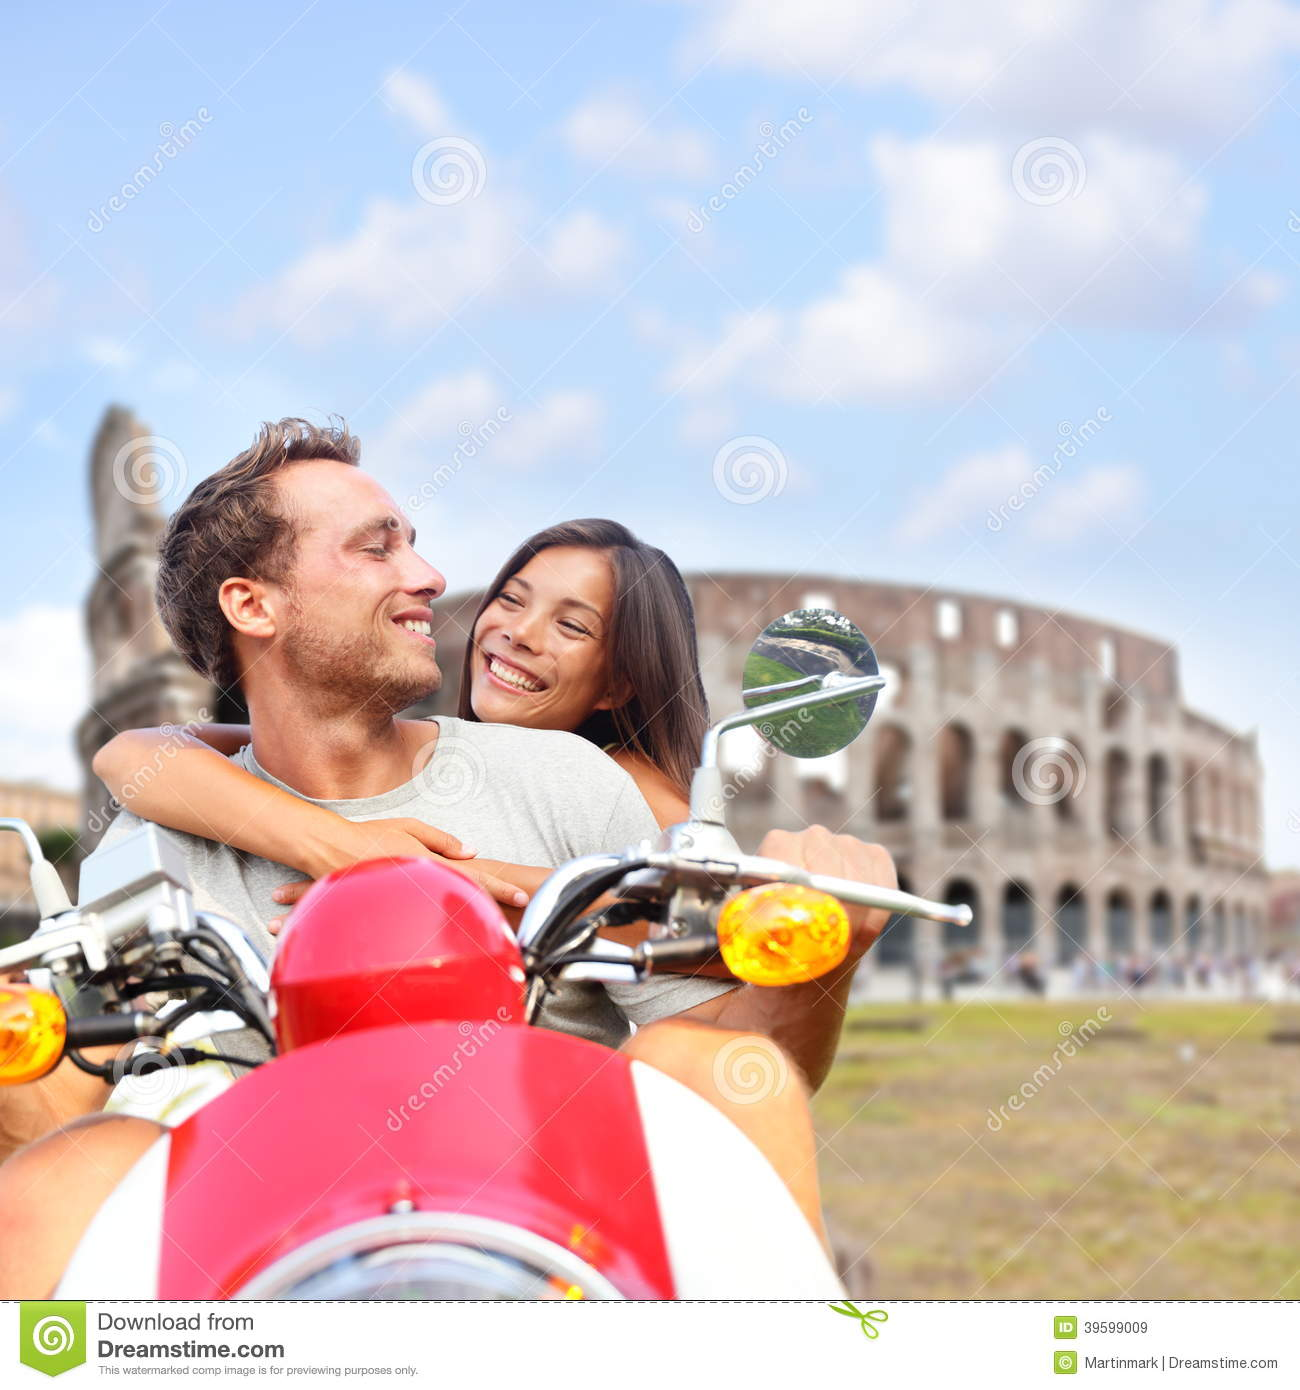 Rome Couple On Scooter By Colosseum, Italy Stock Image